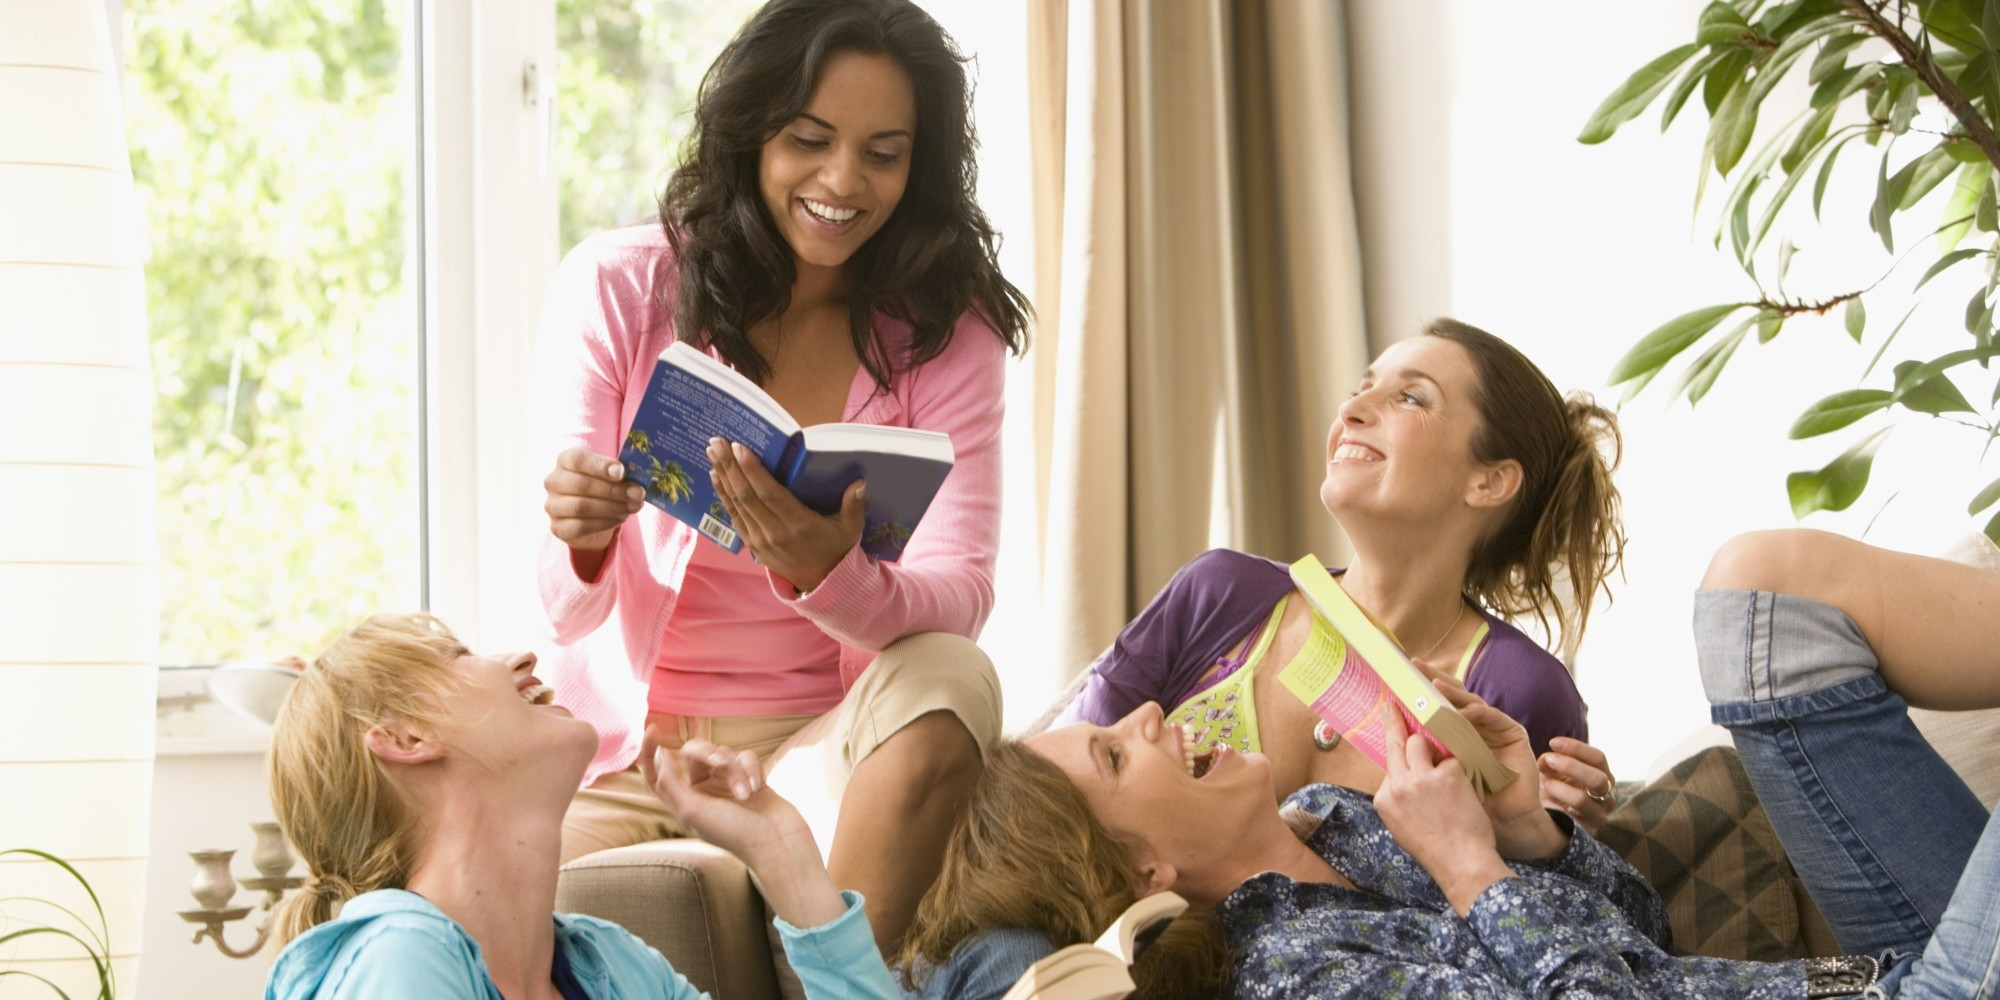 World Book has been helping young learners with fun, engaging, and easy-to-understand books for over years. The reading club is an easy and convenient way to introduce new, fun, educational books to your children. These will build your child's confidence and develop independent reading skills.